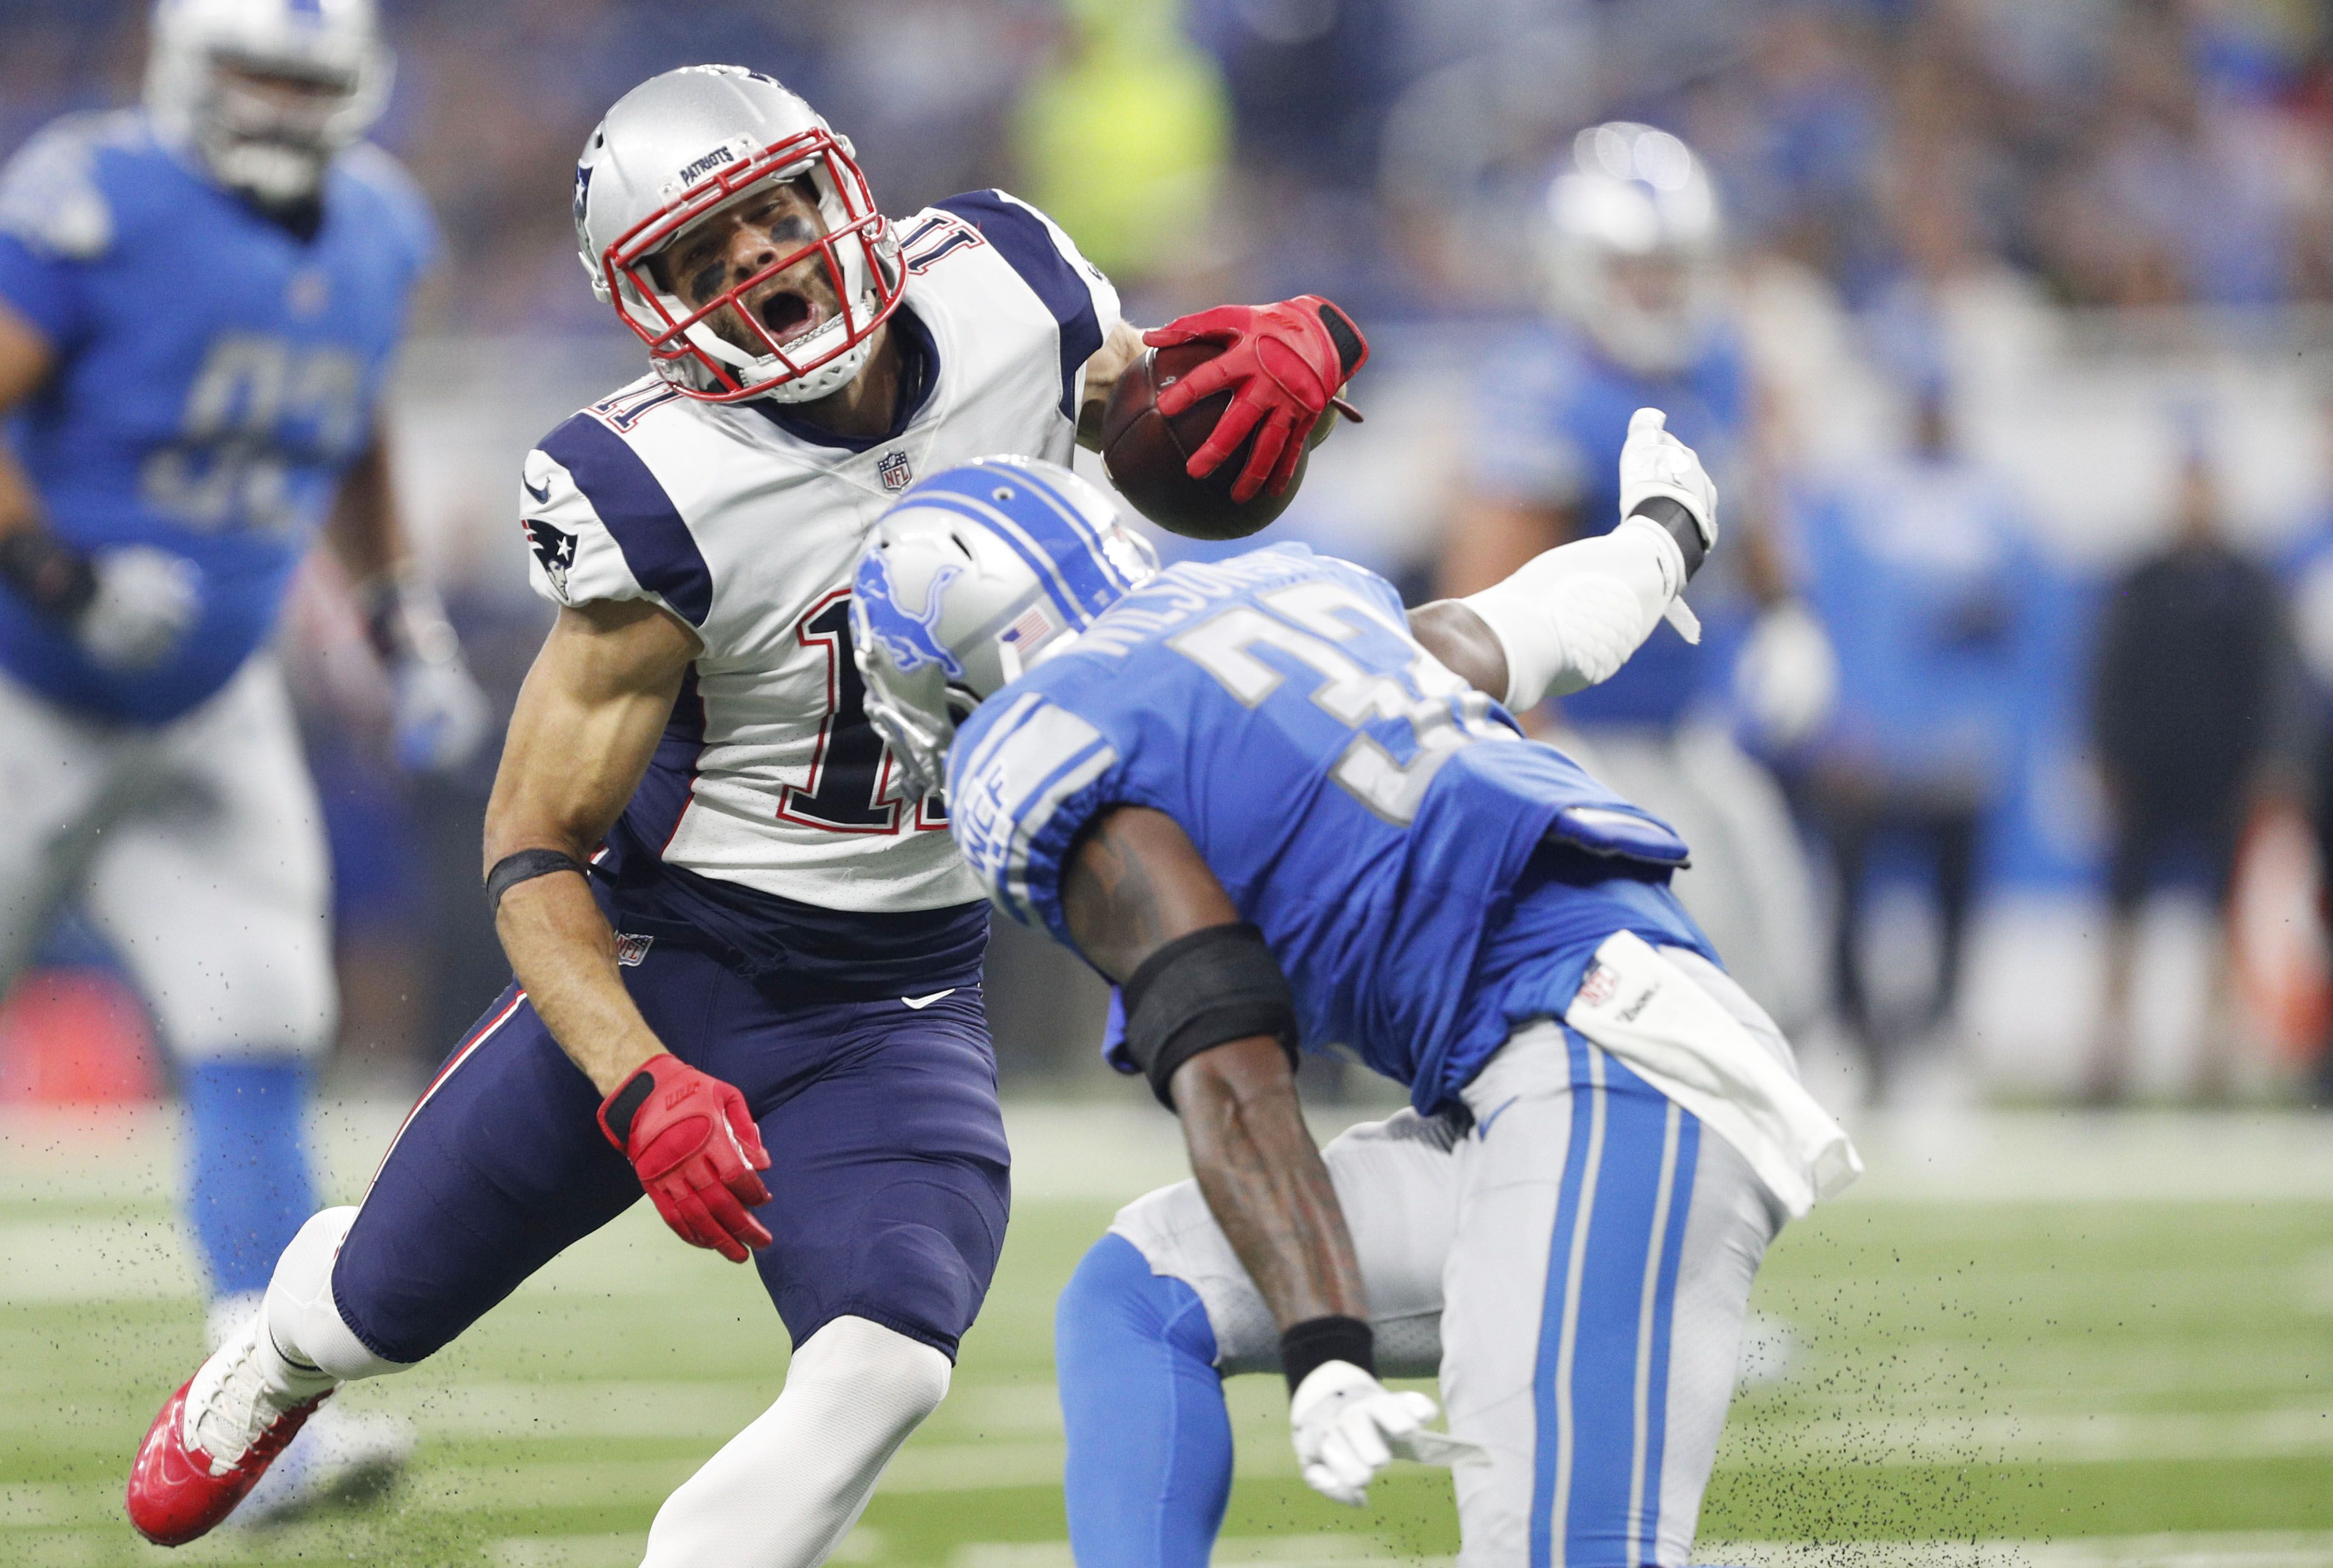 Patriots Vs Titans Tuesday Injury Report Seven Limited For New Englands Walkthrough Nfl News Nfl Update Nfl Nfl Slash In 2020 Patriots Injury Report Nfl News